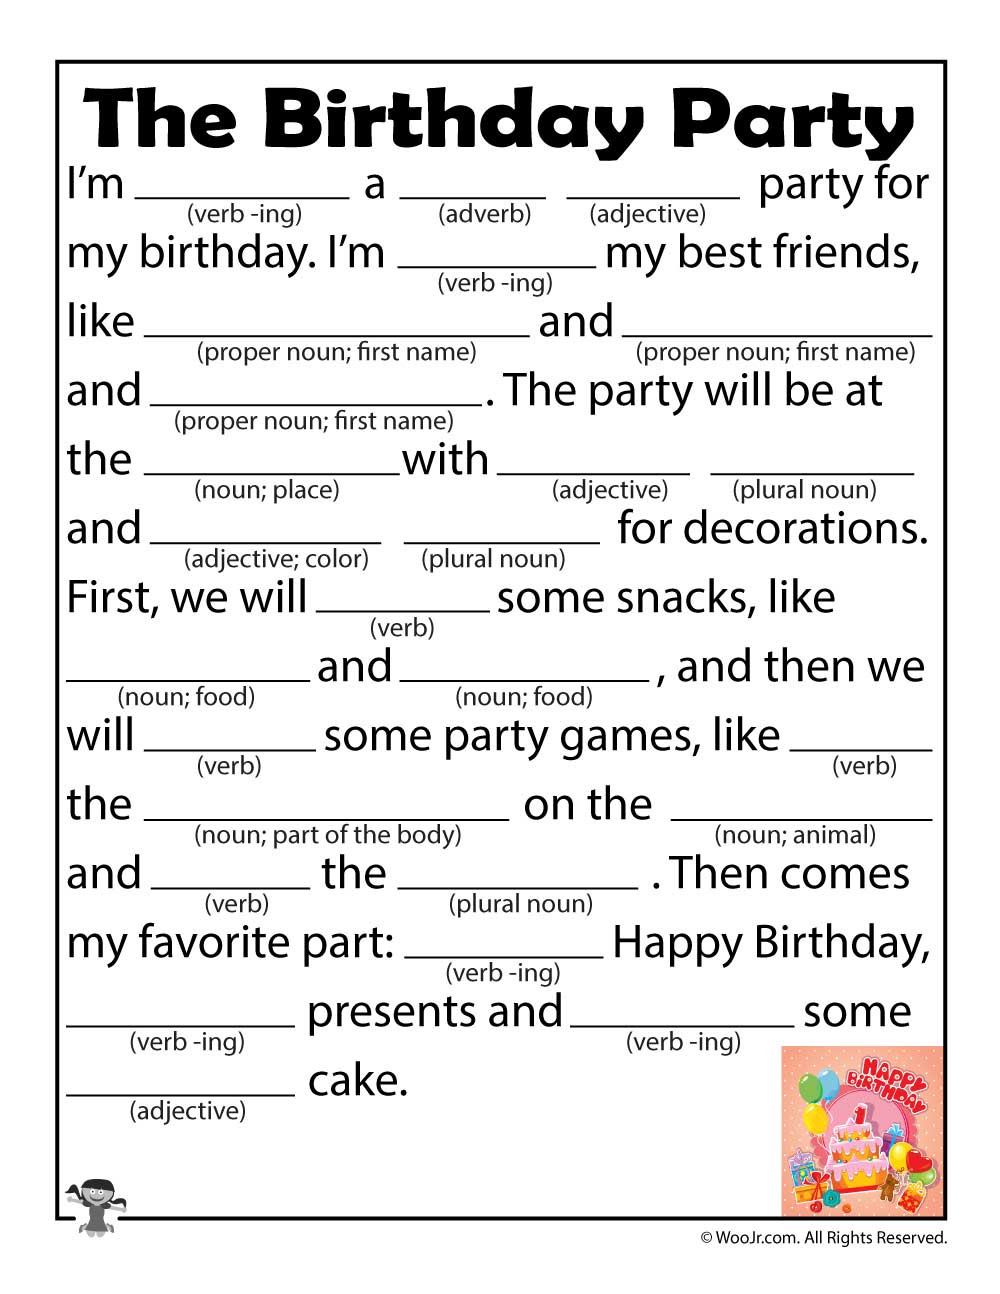 Free Printable Safety Signs Worksheets Funny Birthday Mad Libs Kittybabylove Free Printable